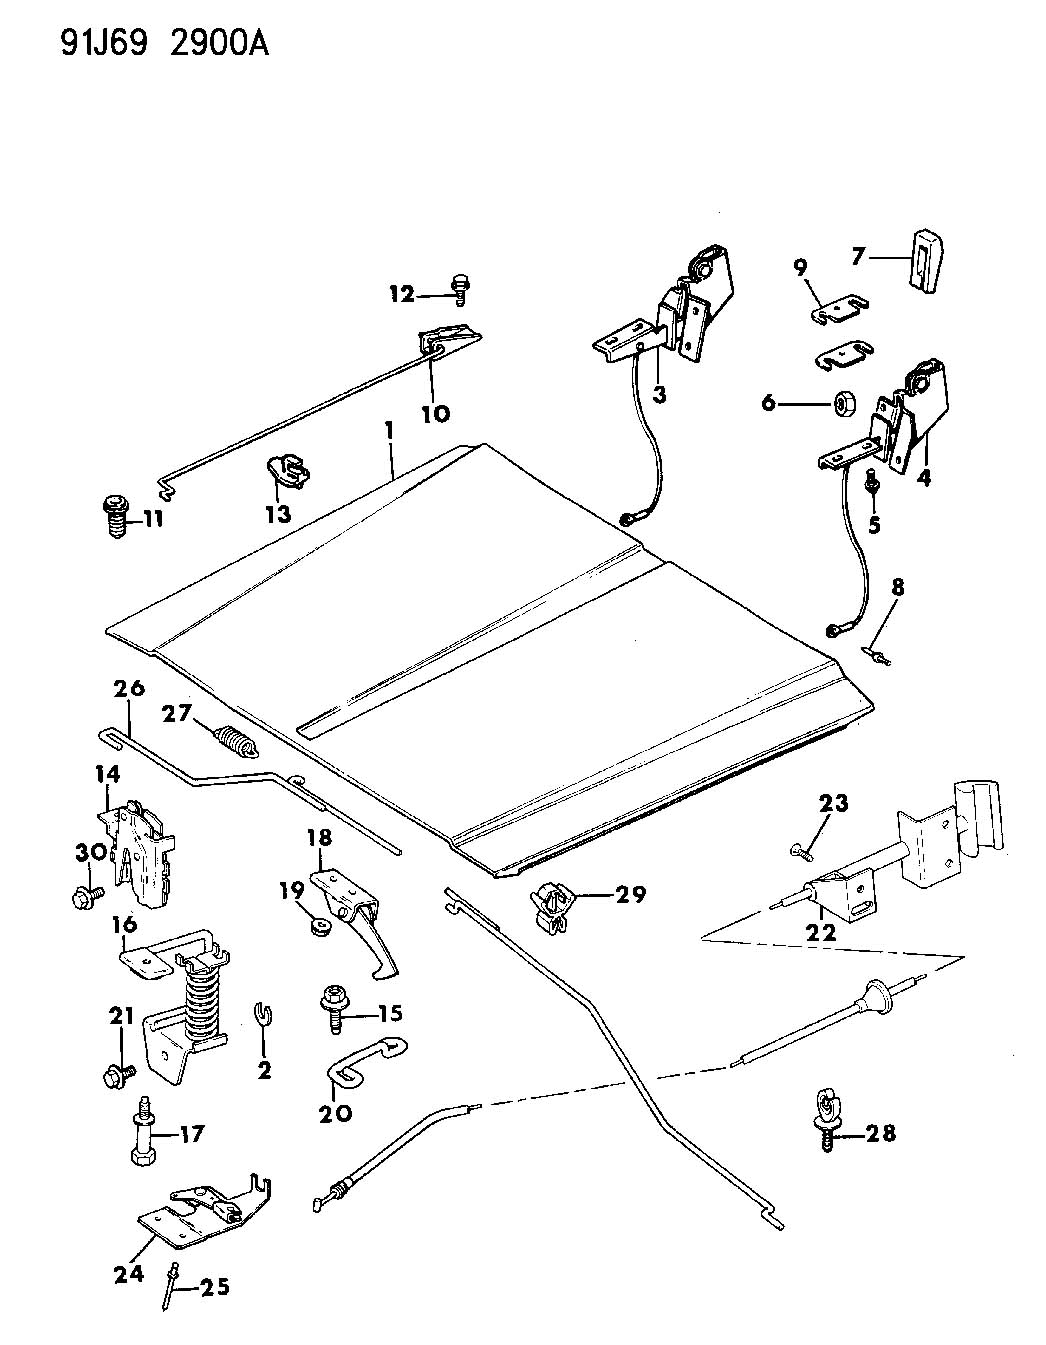 Service manual [How To Fix 1992 Jeep Cherokee Trunk Latch